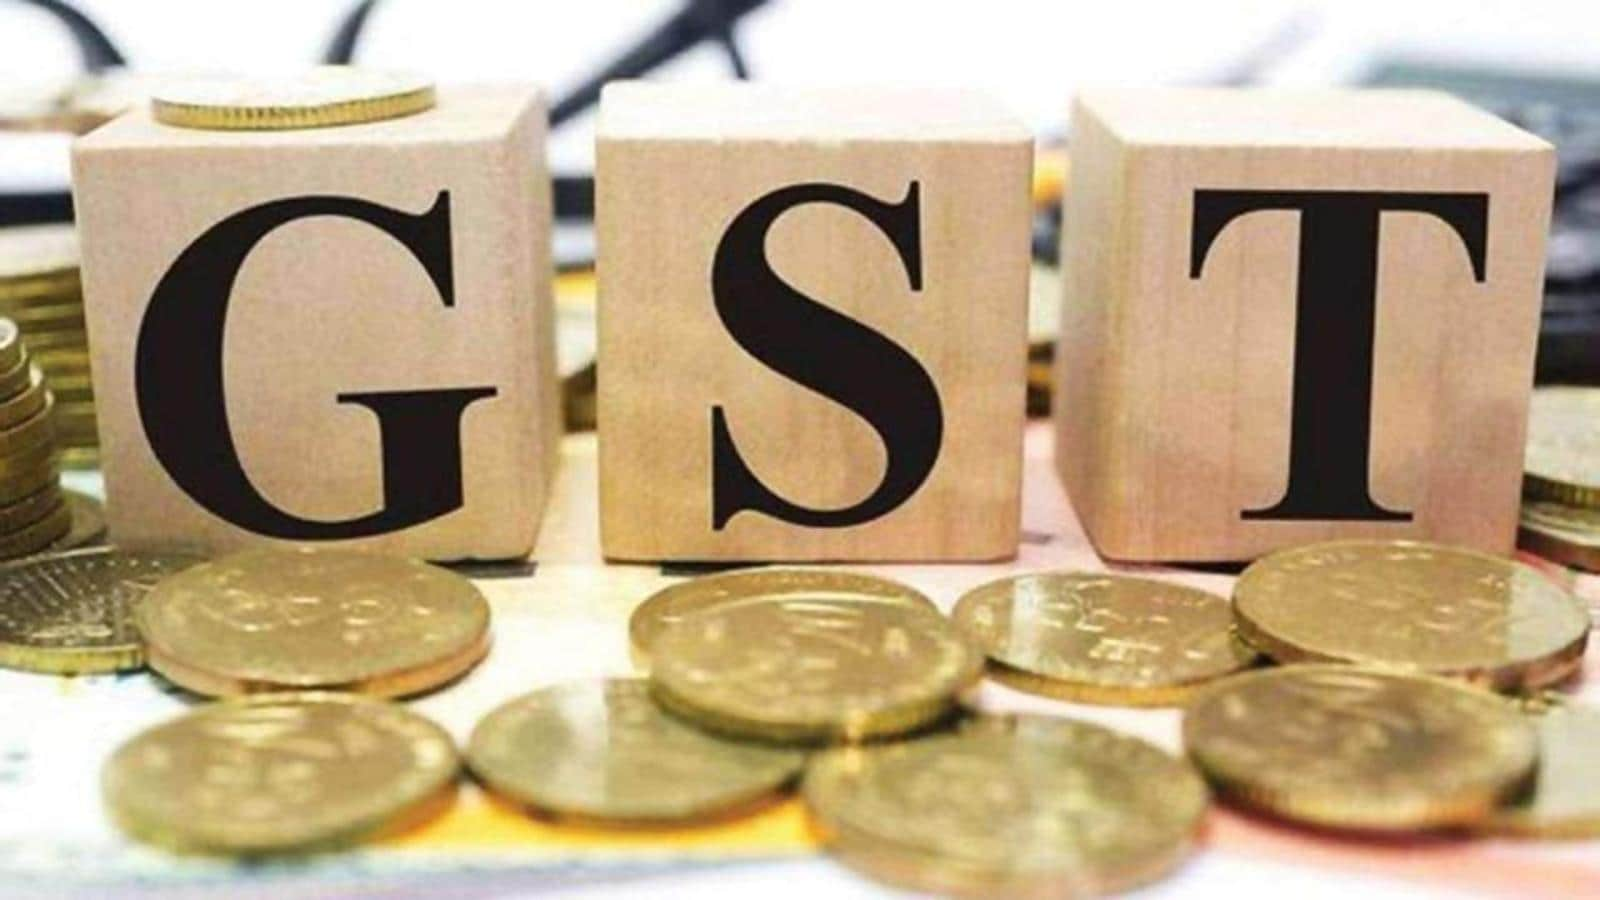 GST Council meeting: Key proposals to be discussed today